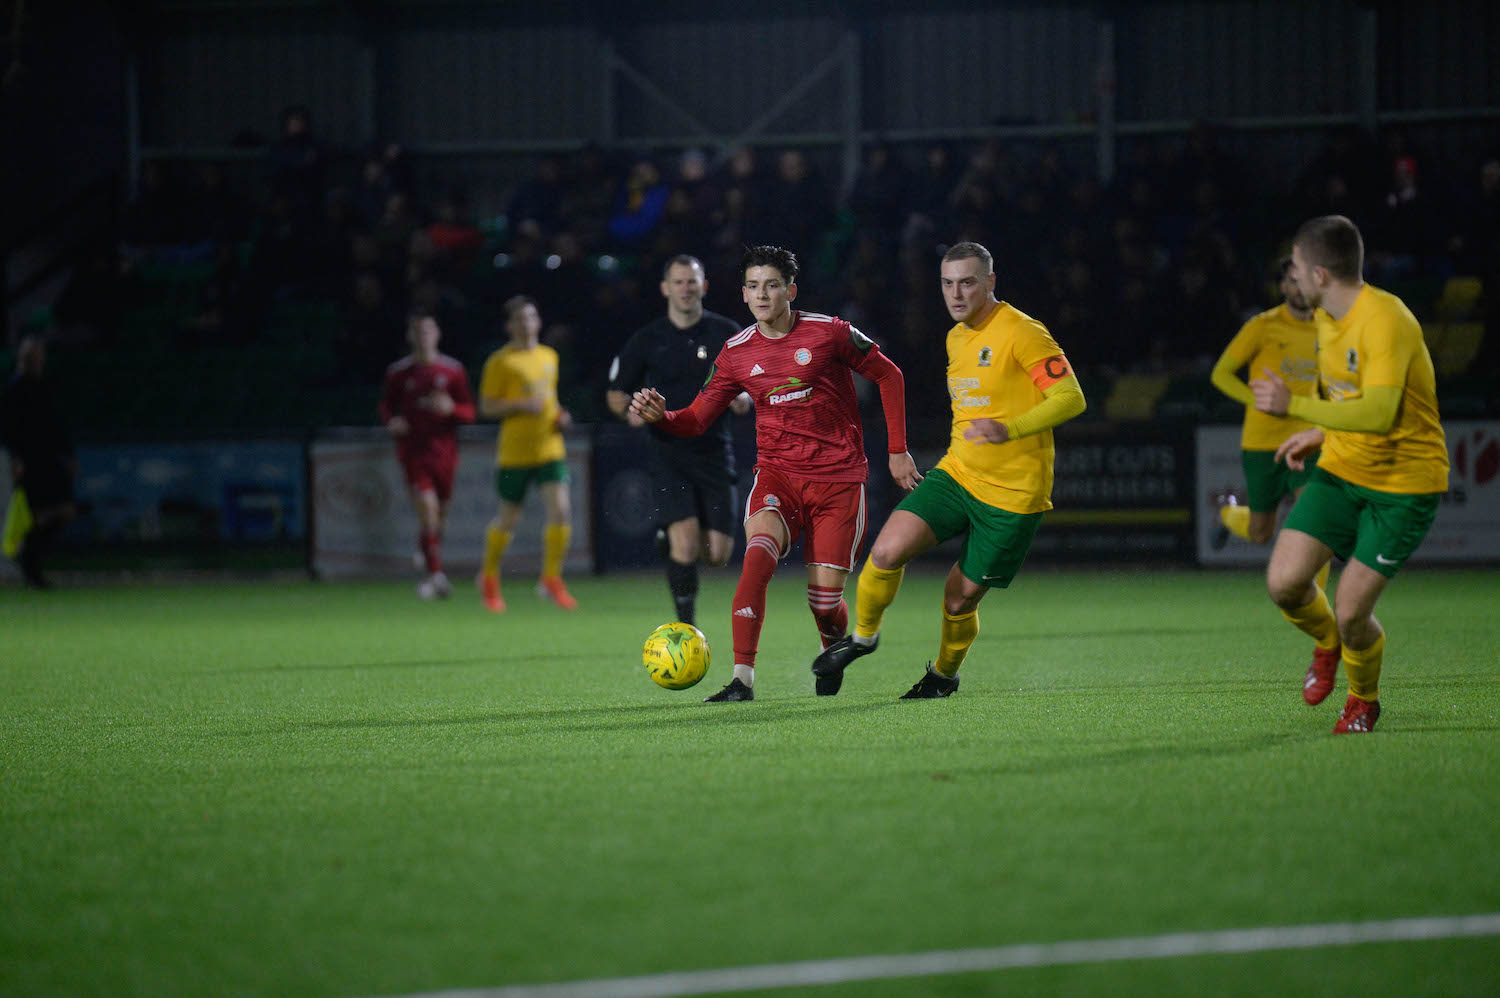 Read the full article - Worthing vs Bowers & Pitsea, 10/10/2020